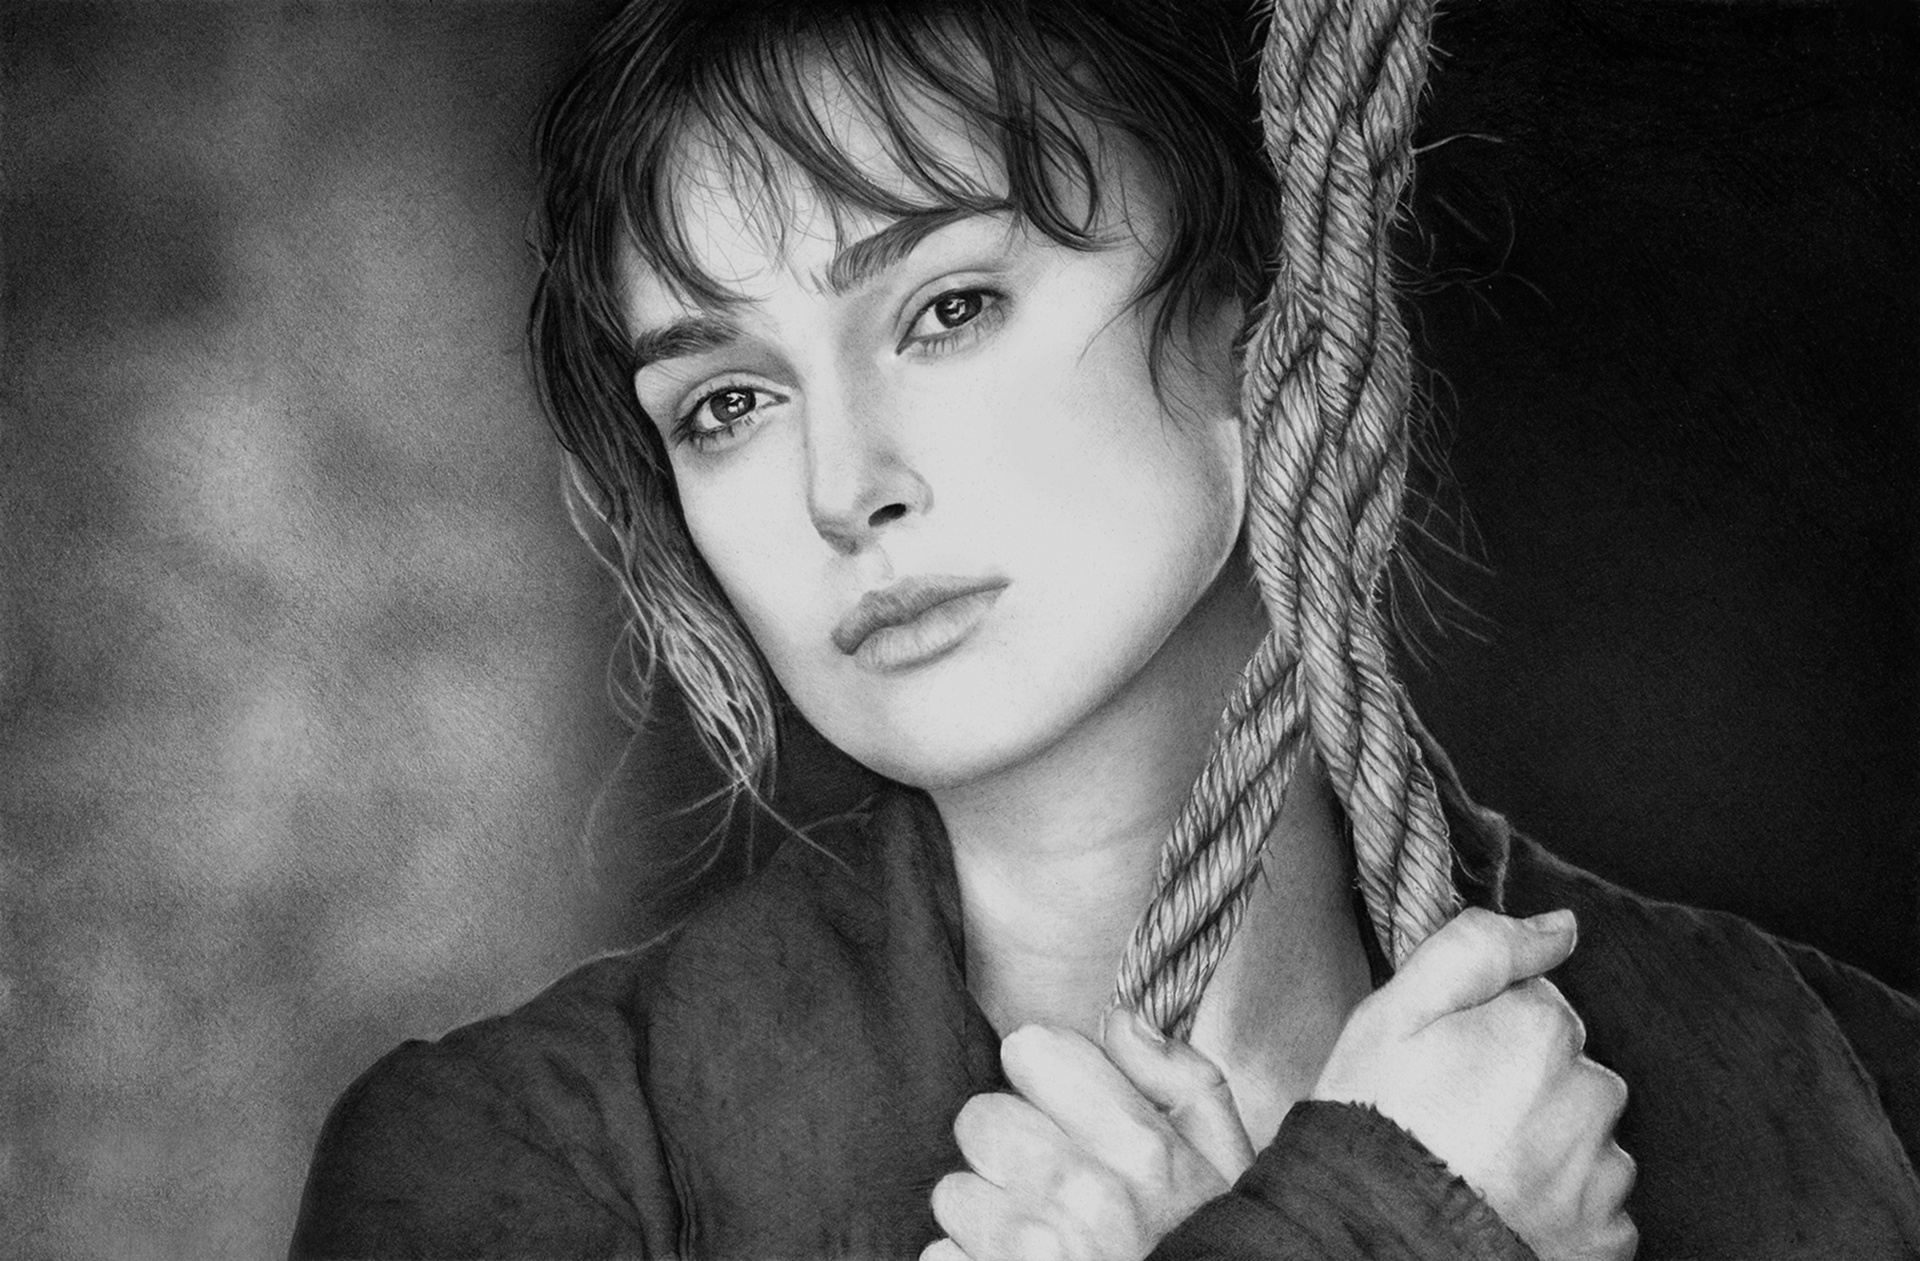 Keira Knightley Wallpapers, Pictures, Images Keira Knightley